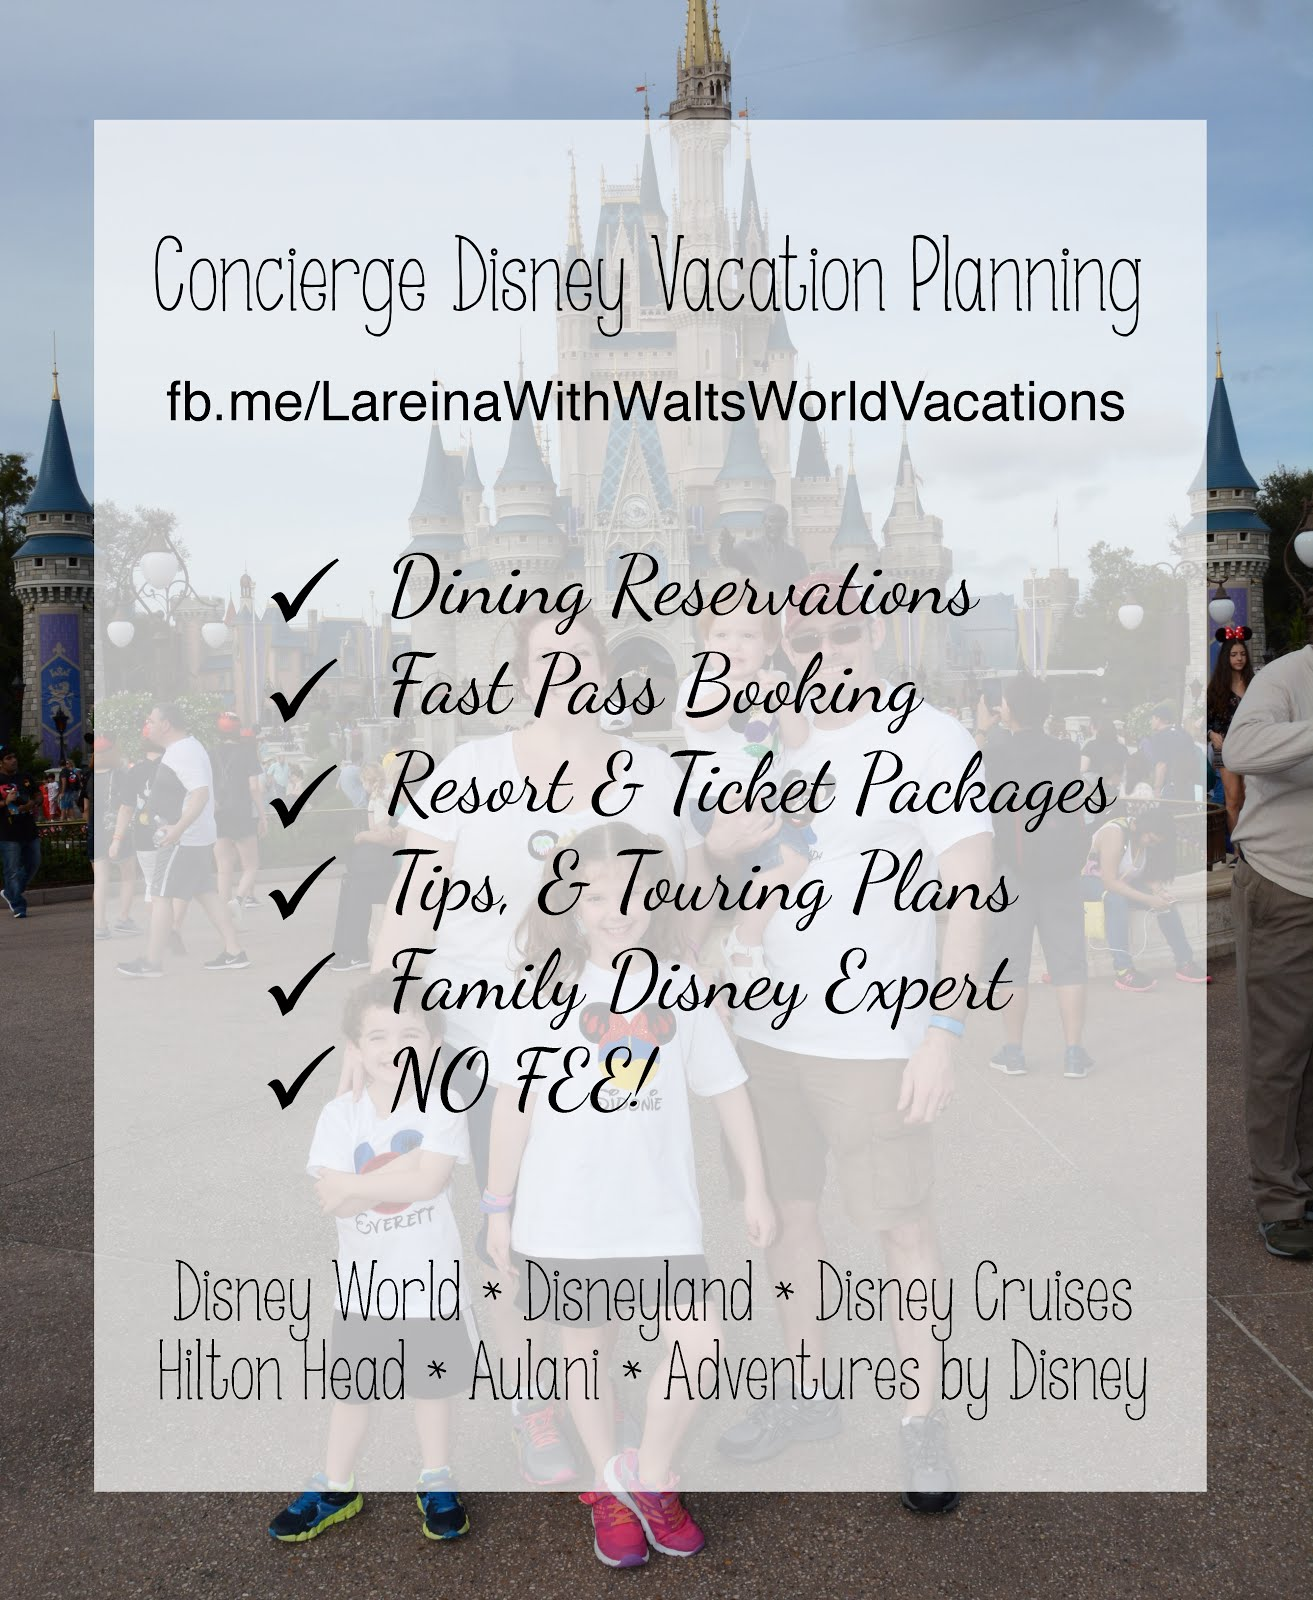 No FEE Disney Planning!